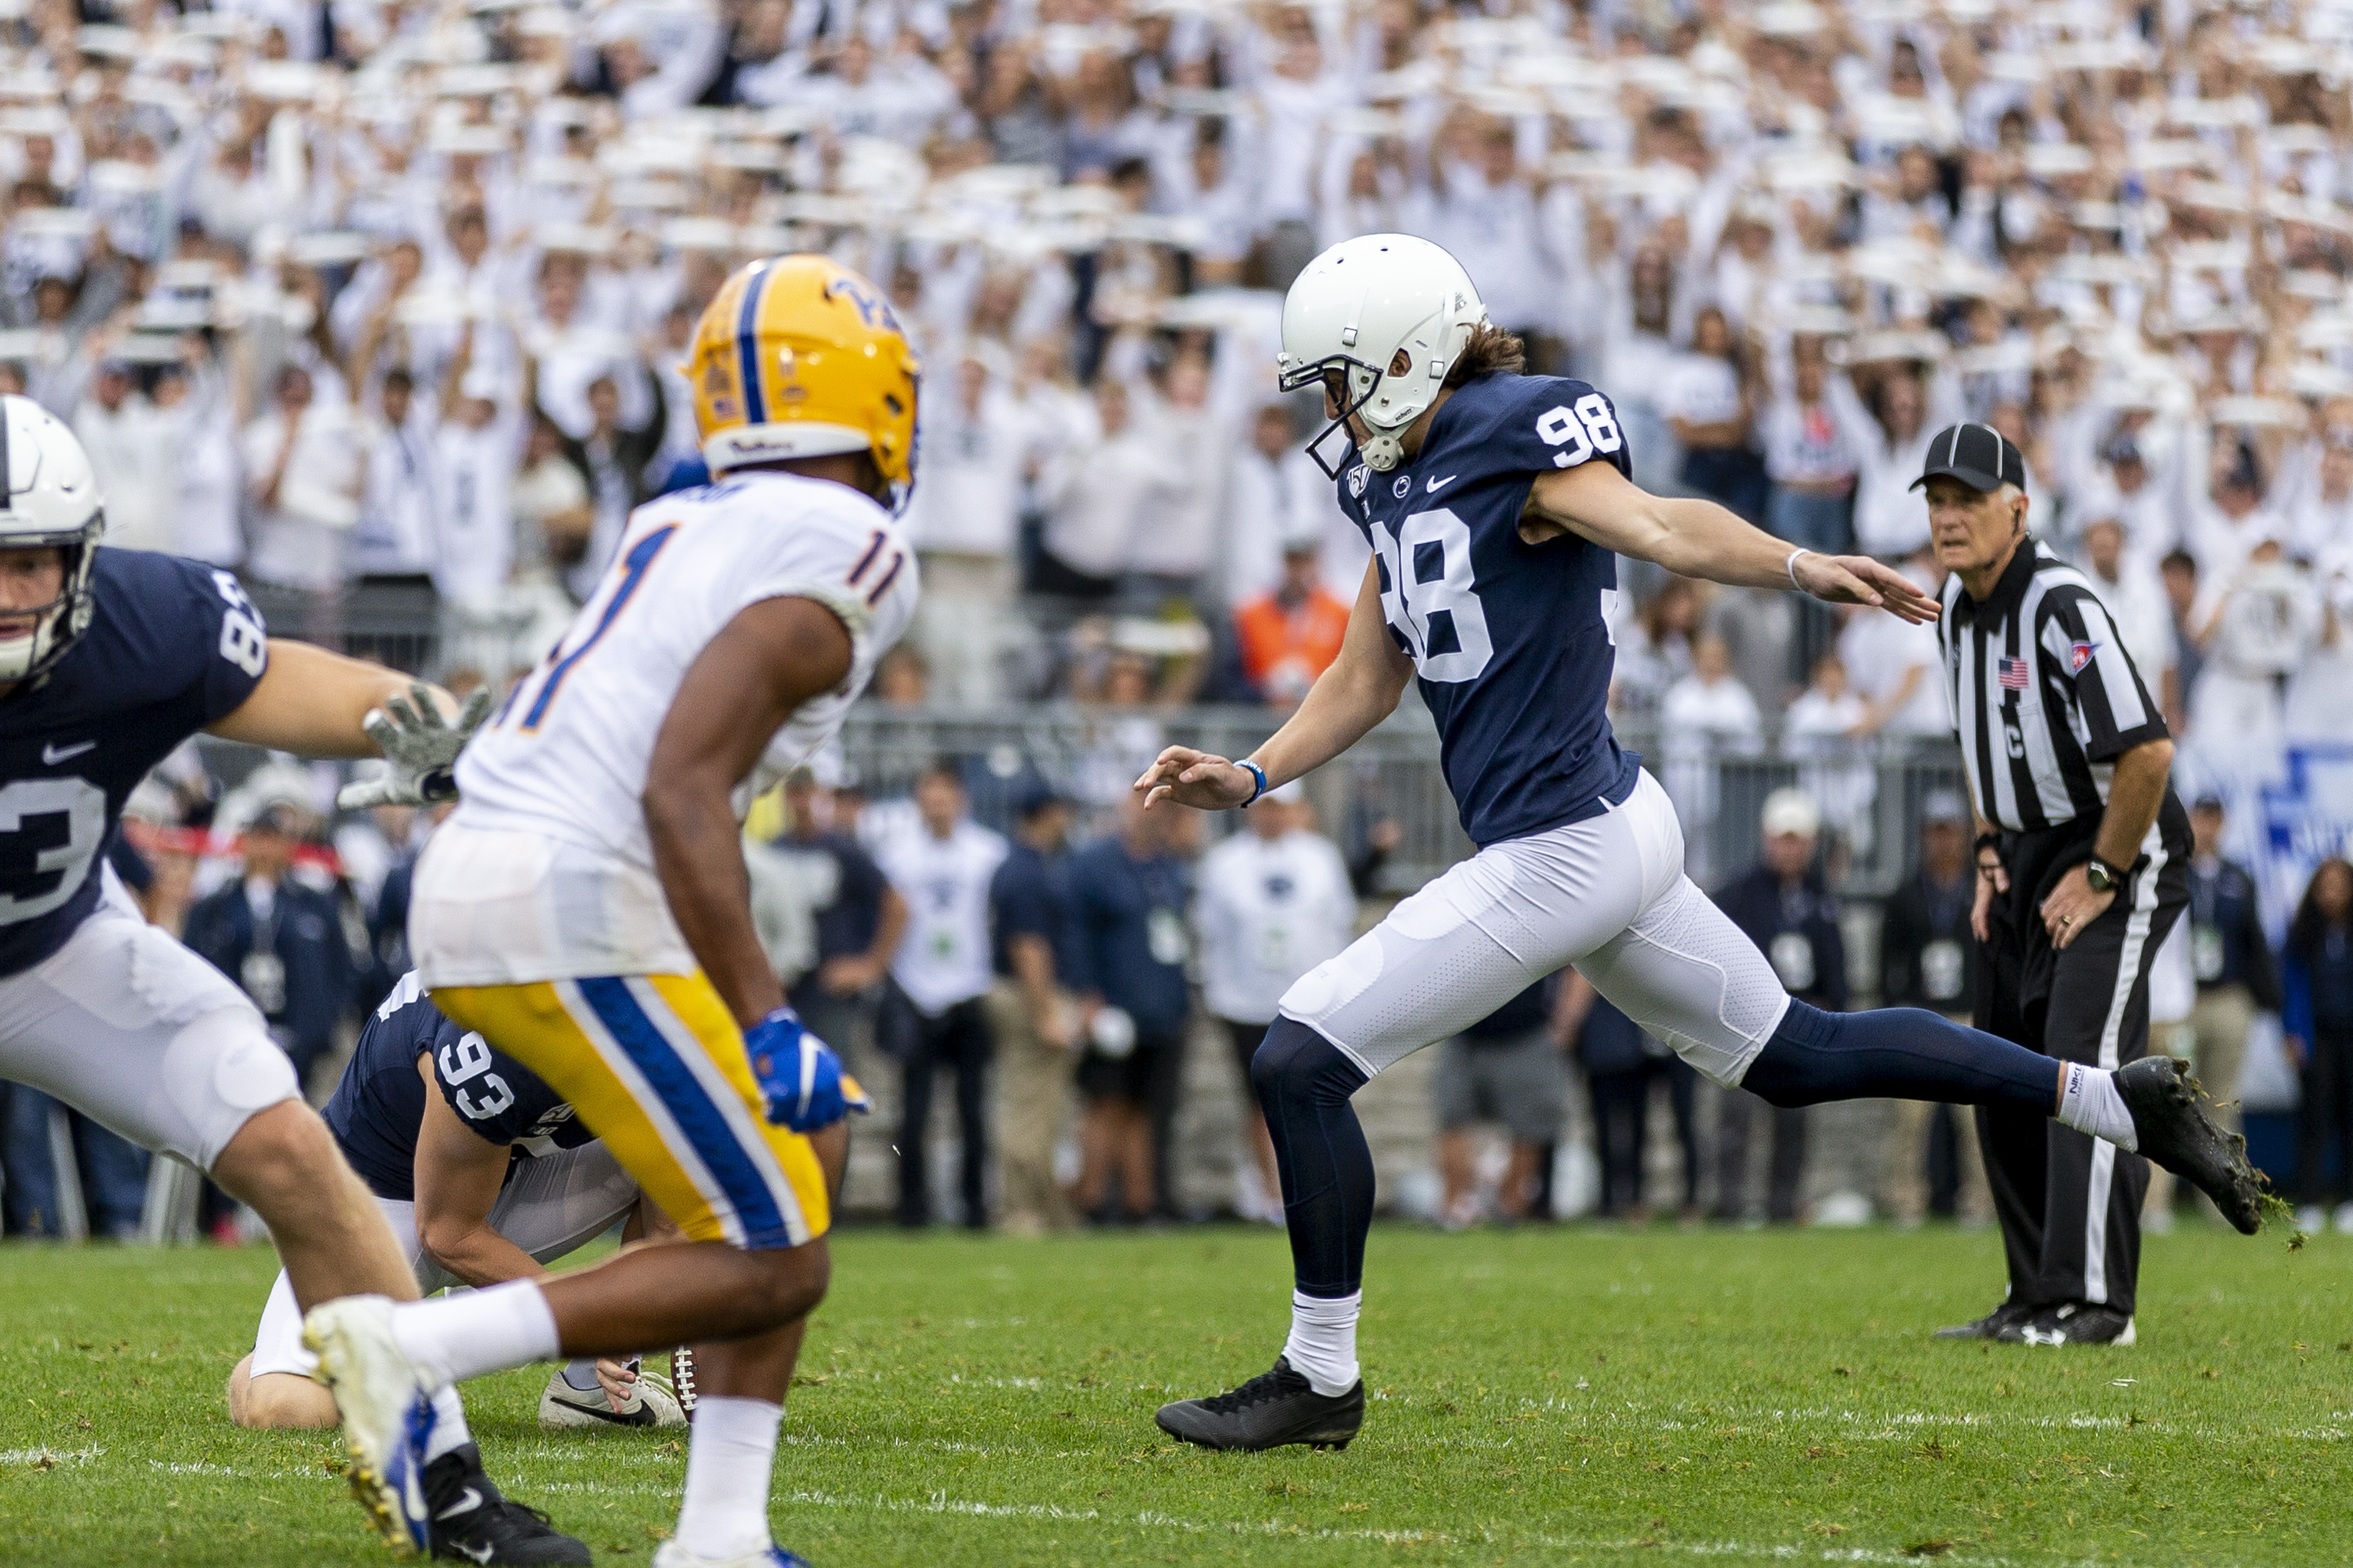 Penn State football rewind: Five plays that defined the first quarter of the Lions' regular season